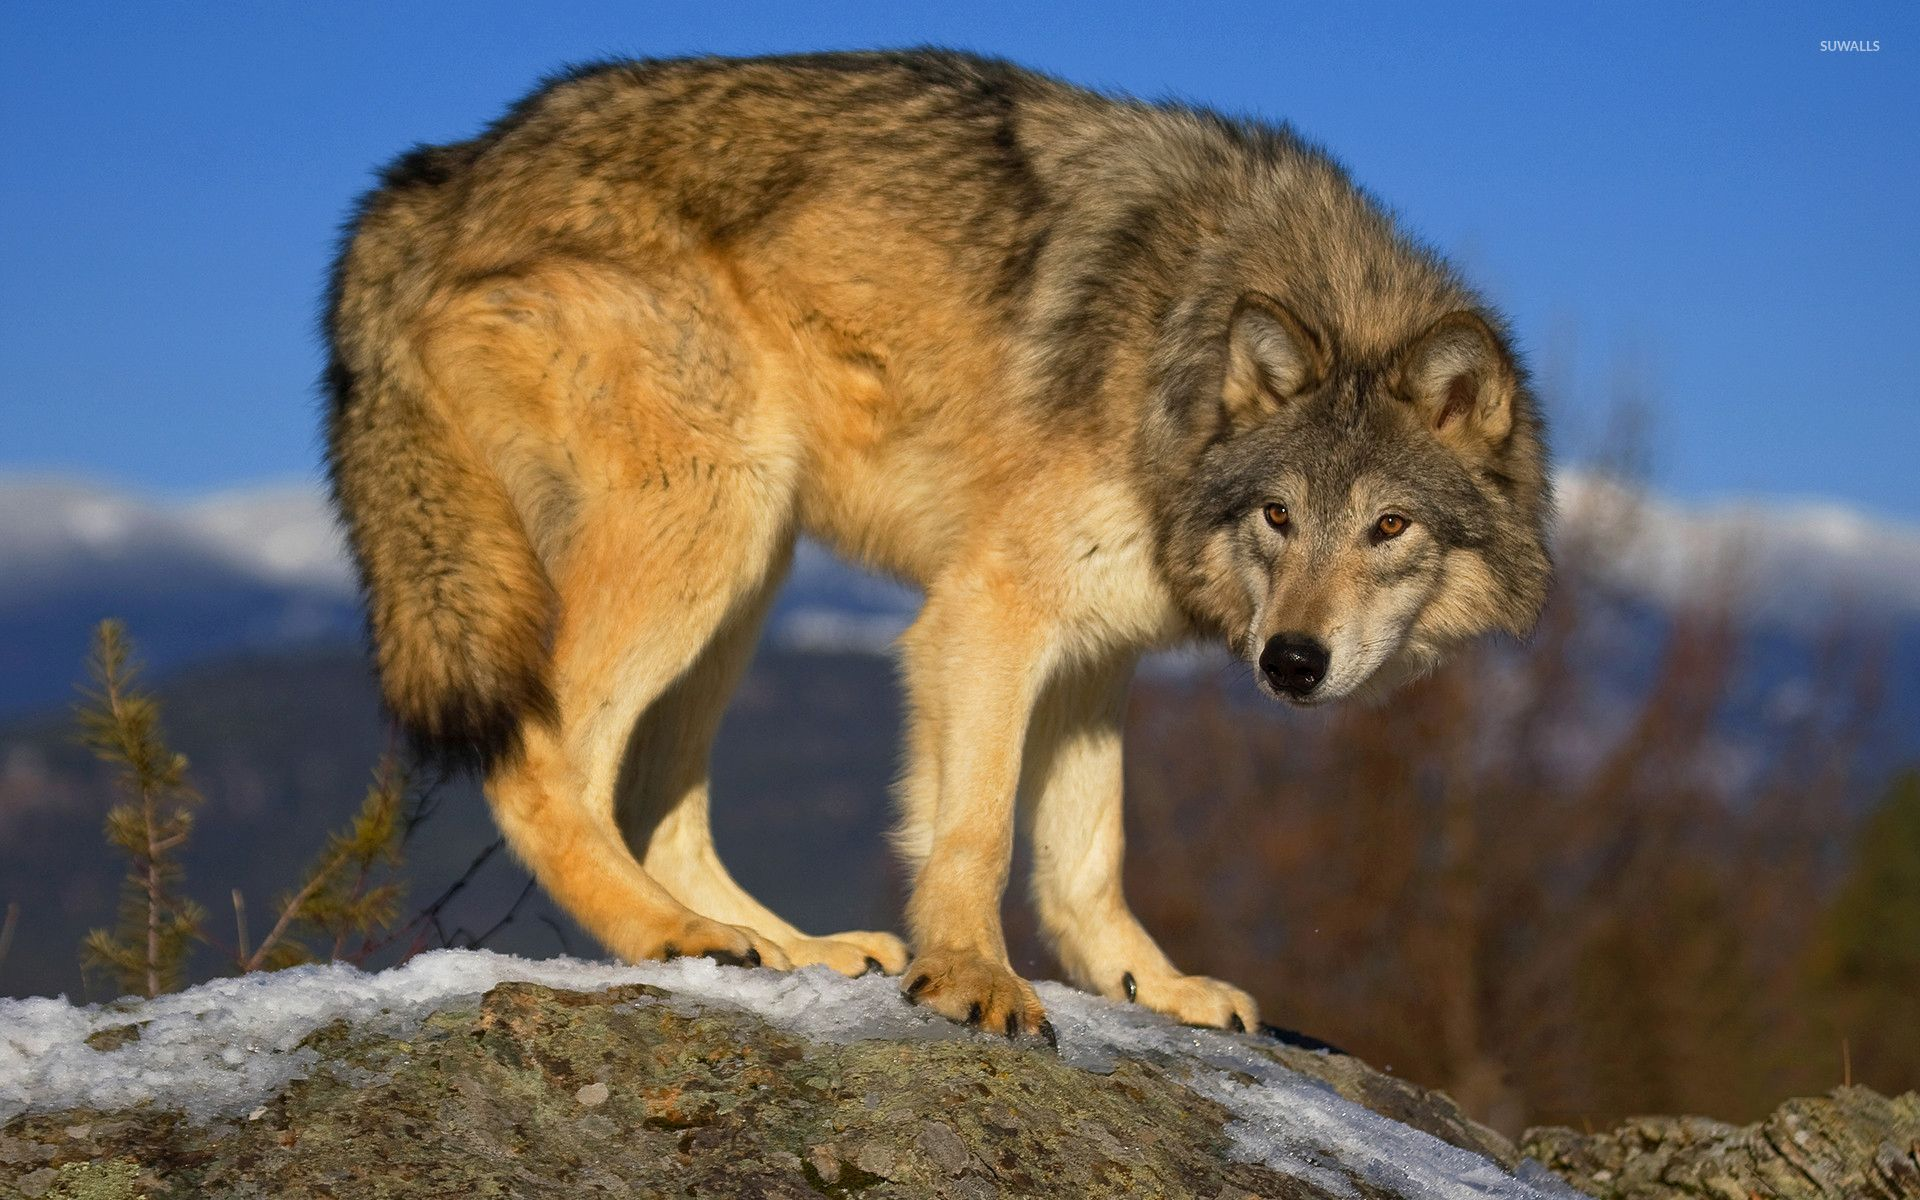 Wolf on the rock wallpaper - Animal wallpapers - #54198